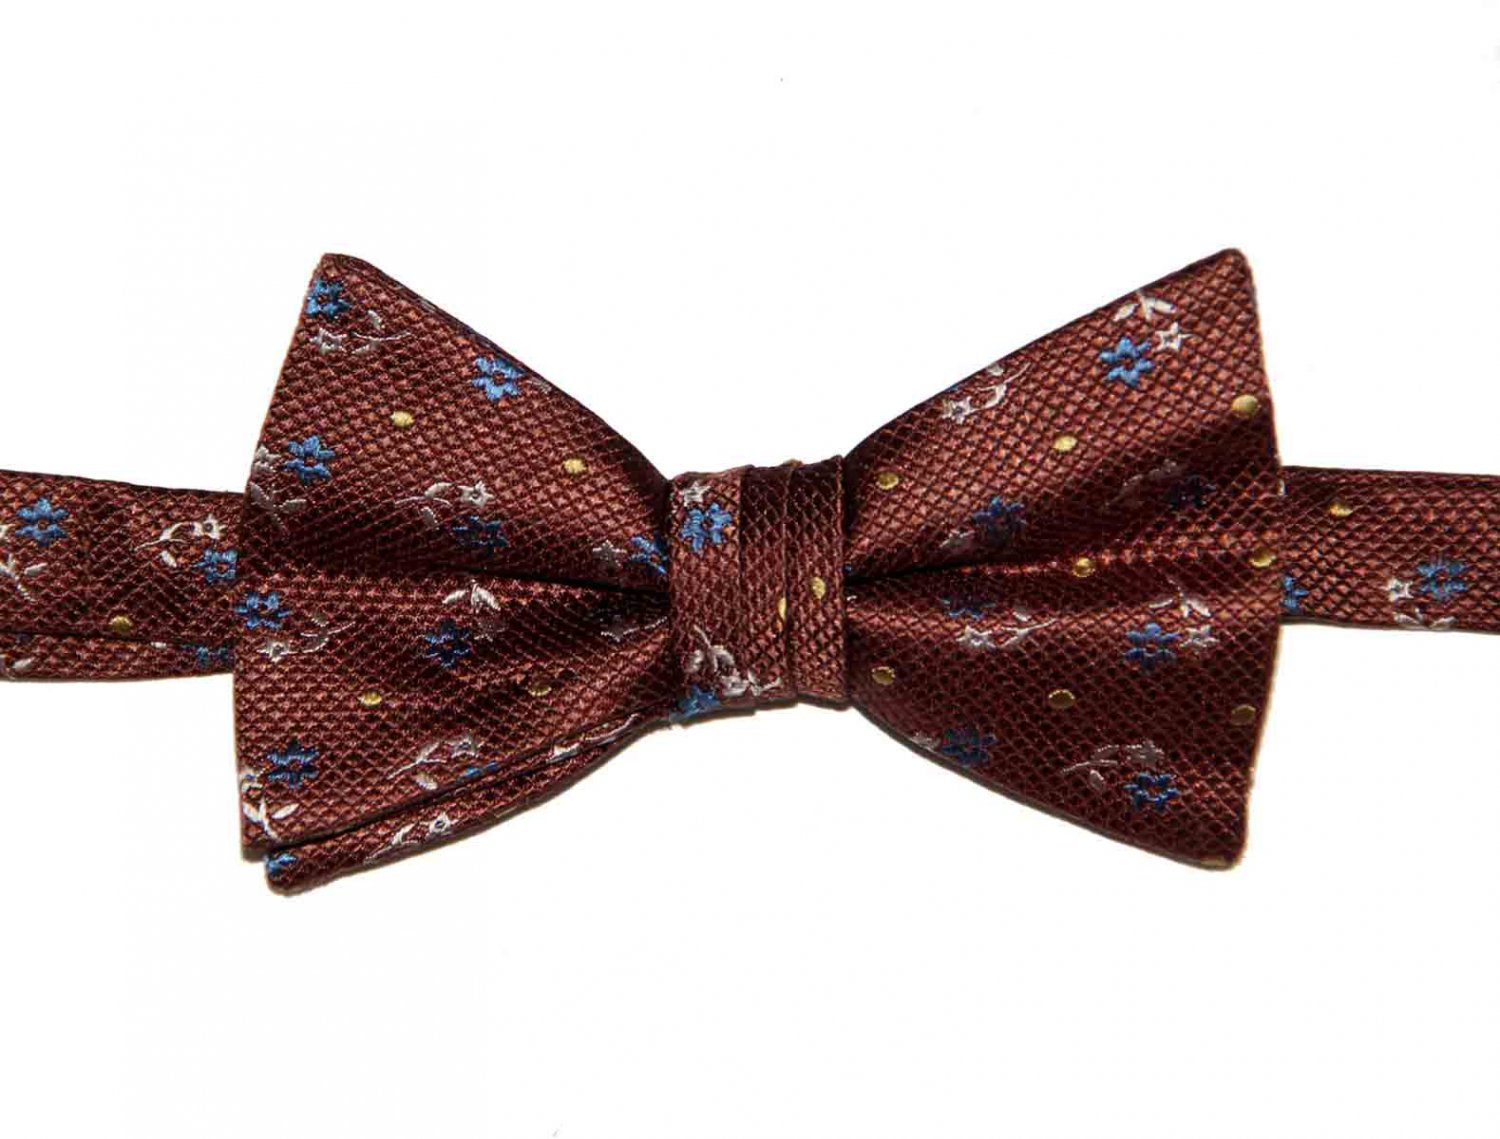 Zara Bow Tie Brown Blue Yellow White Silk Floral Pre-Tied One Size Adjustable Men's